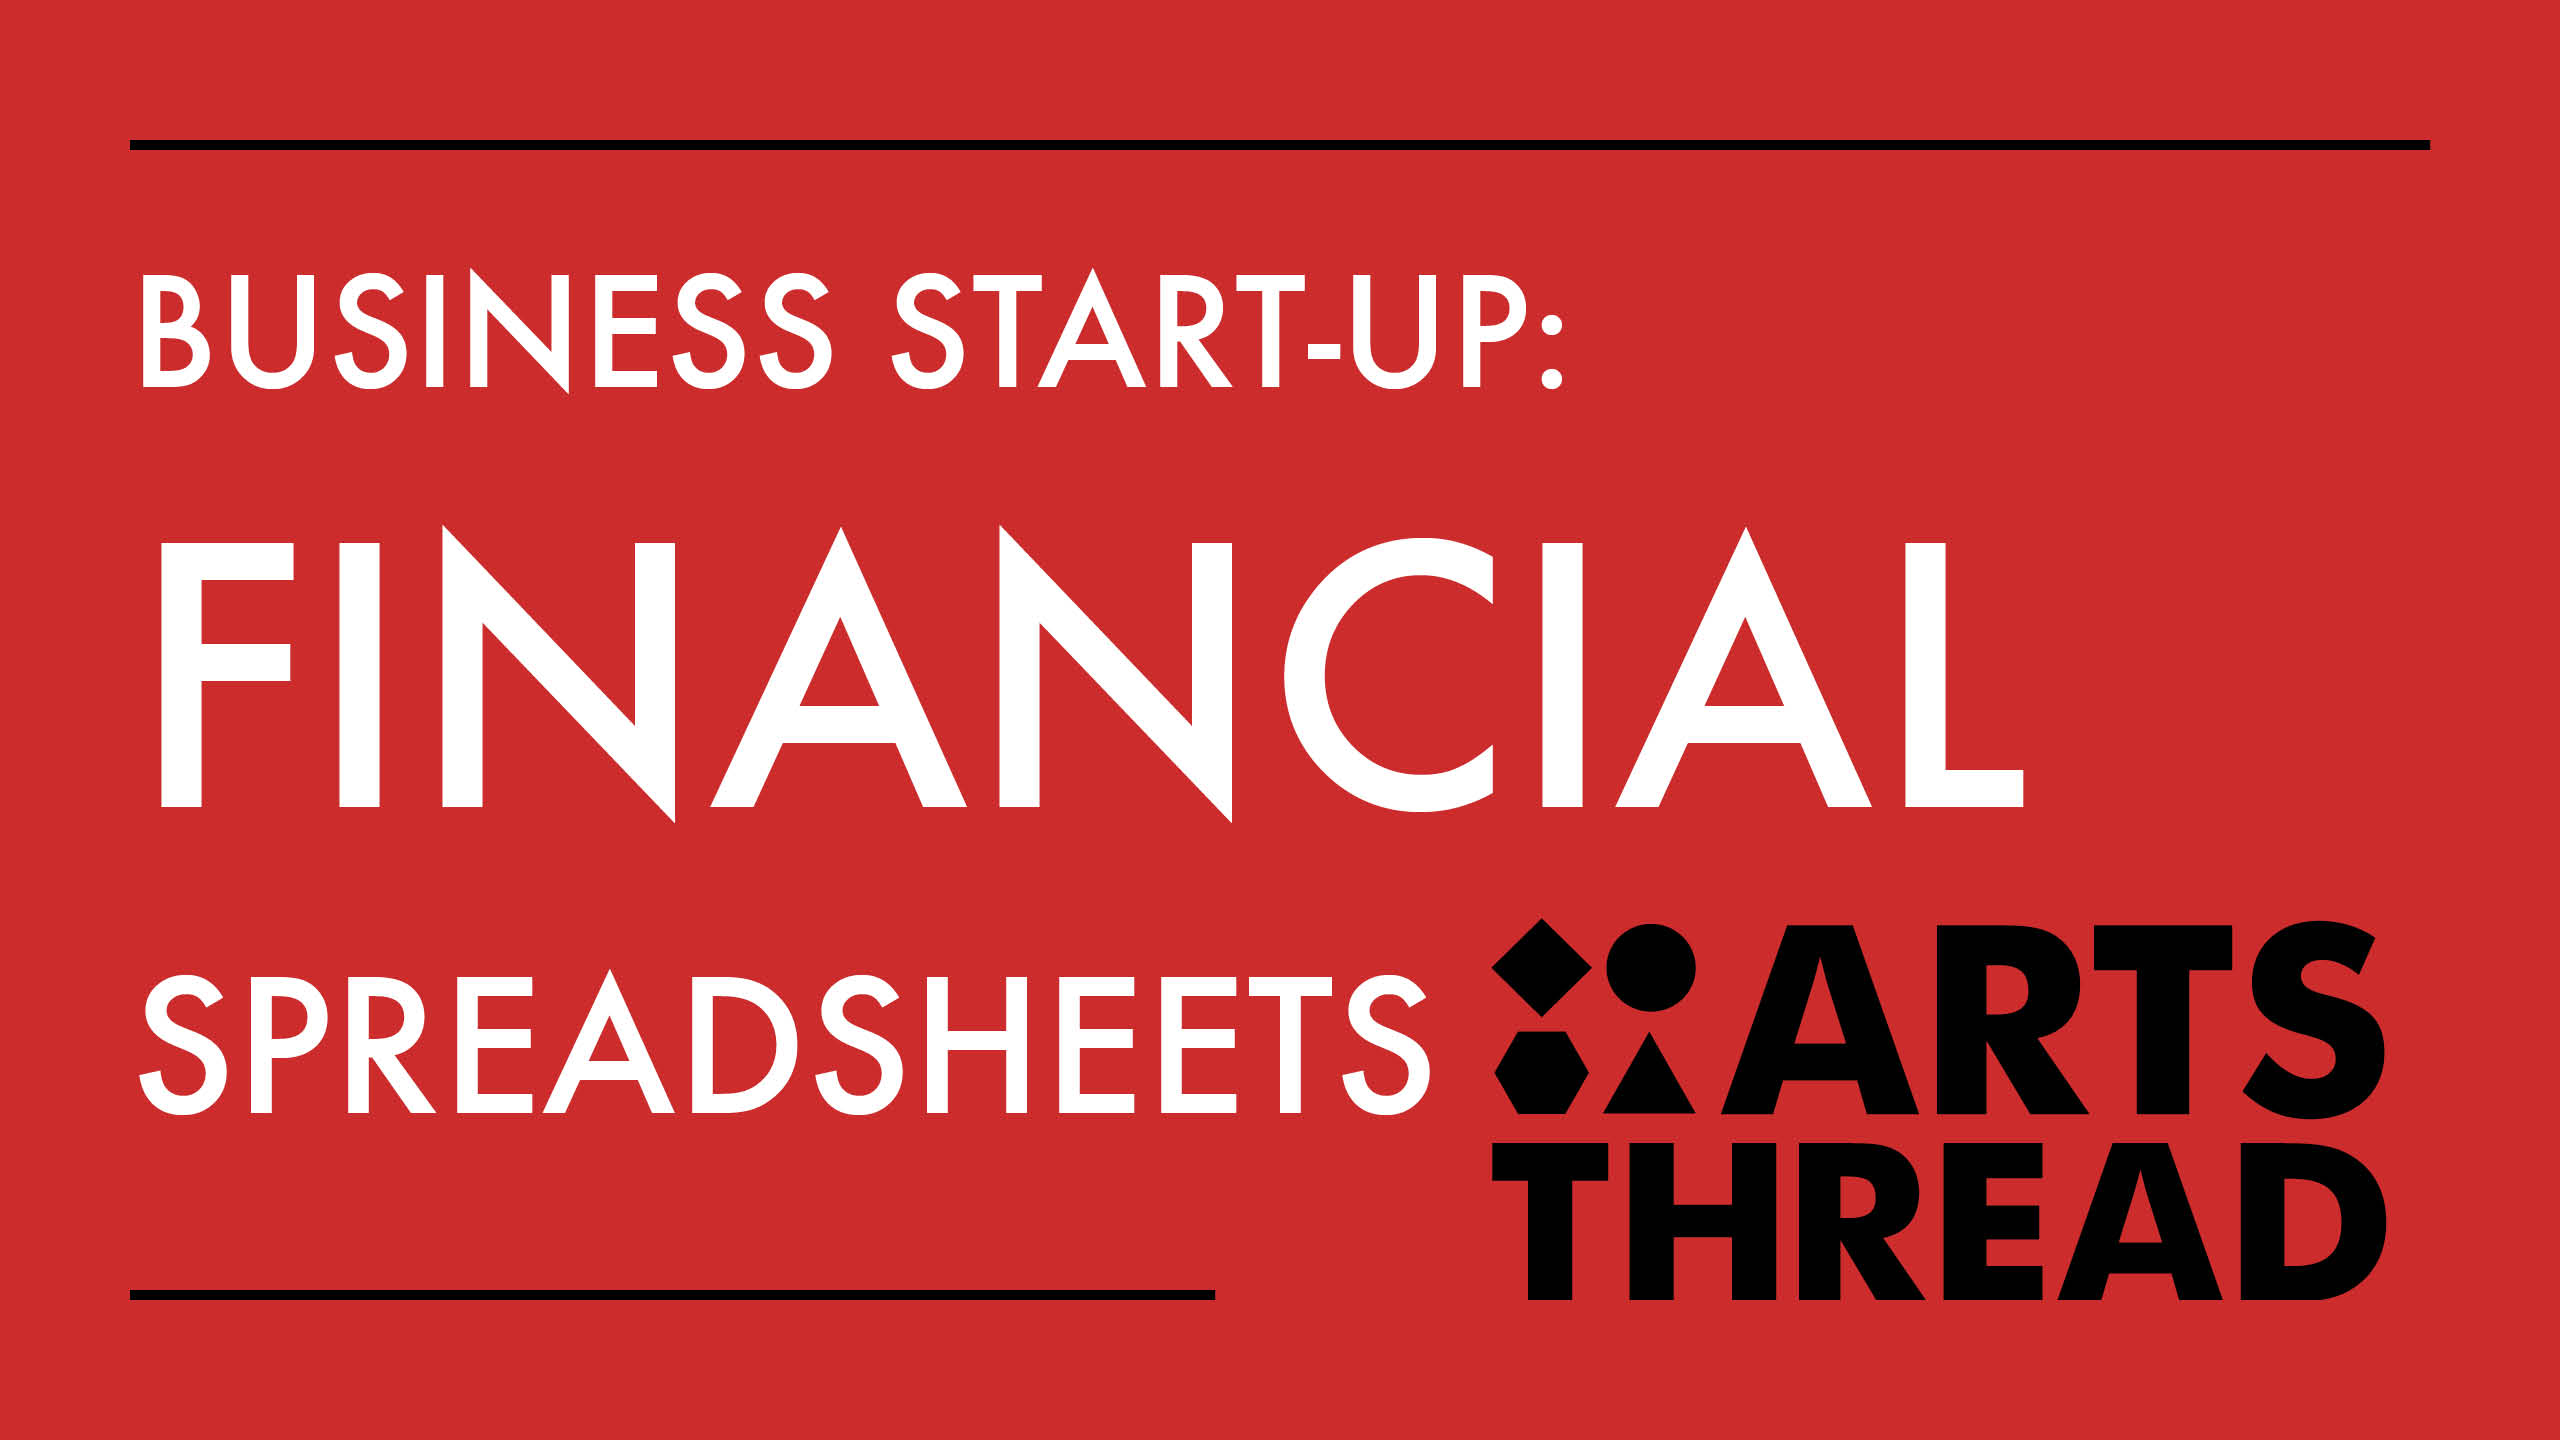 arts thread business start up financial spreadsheets